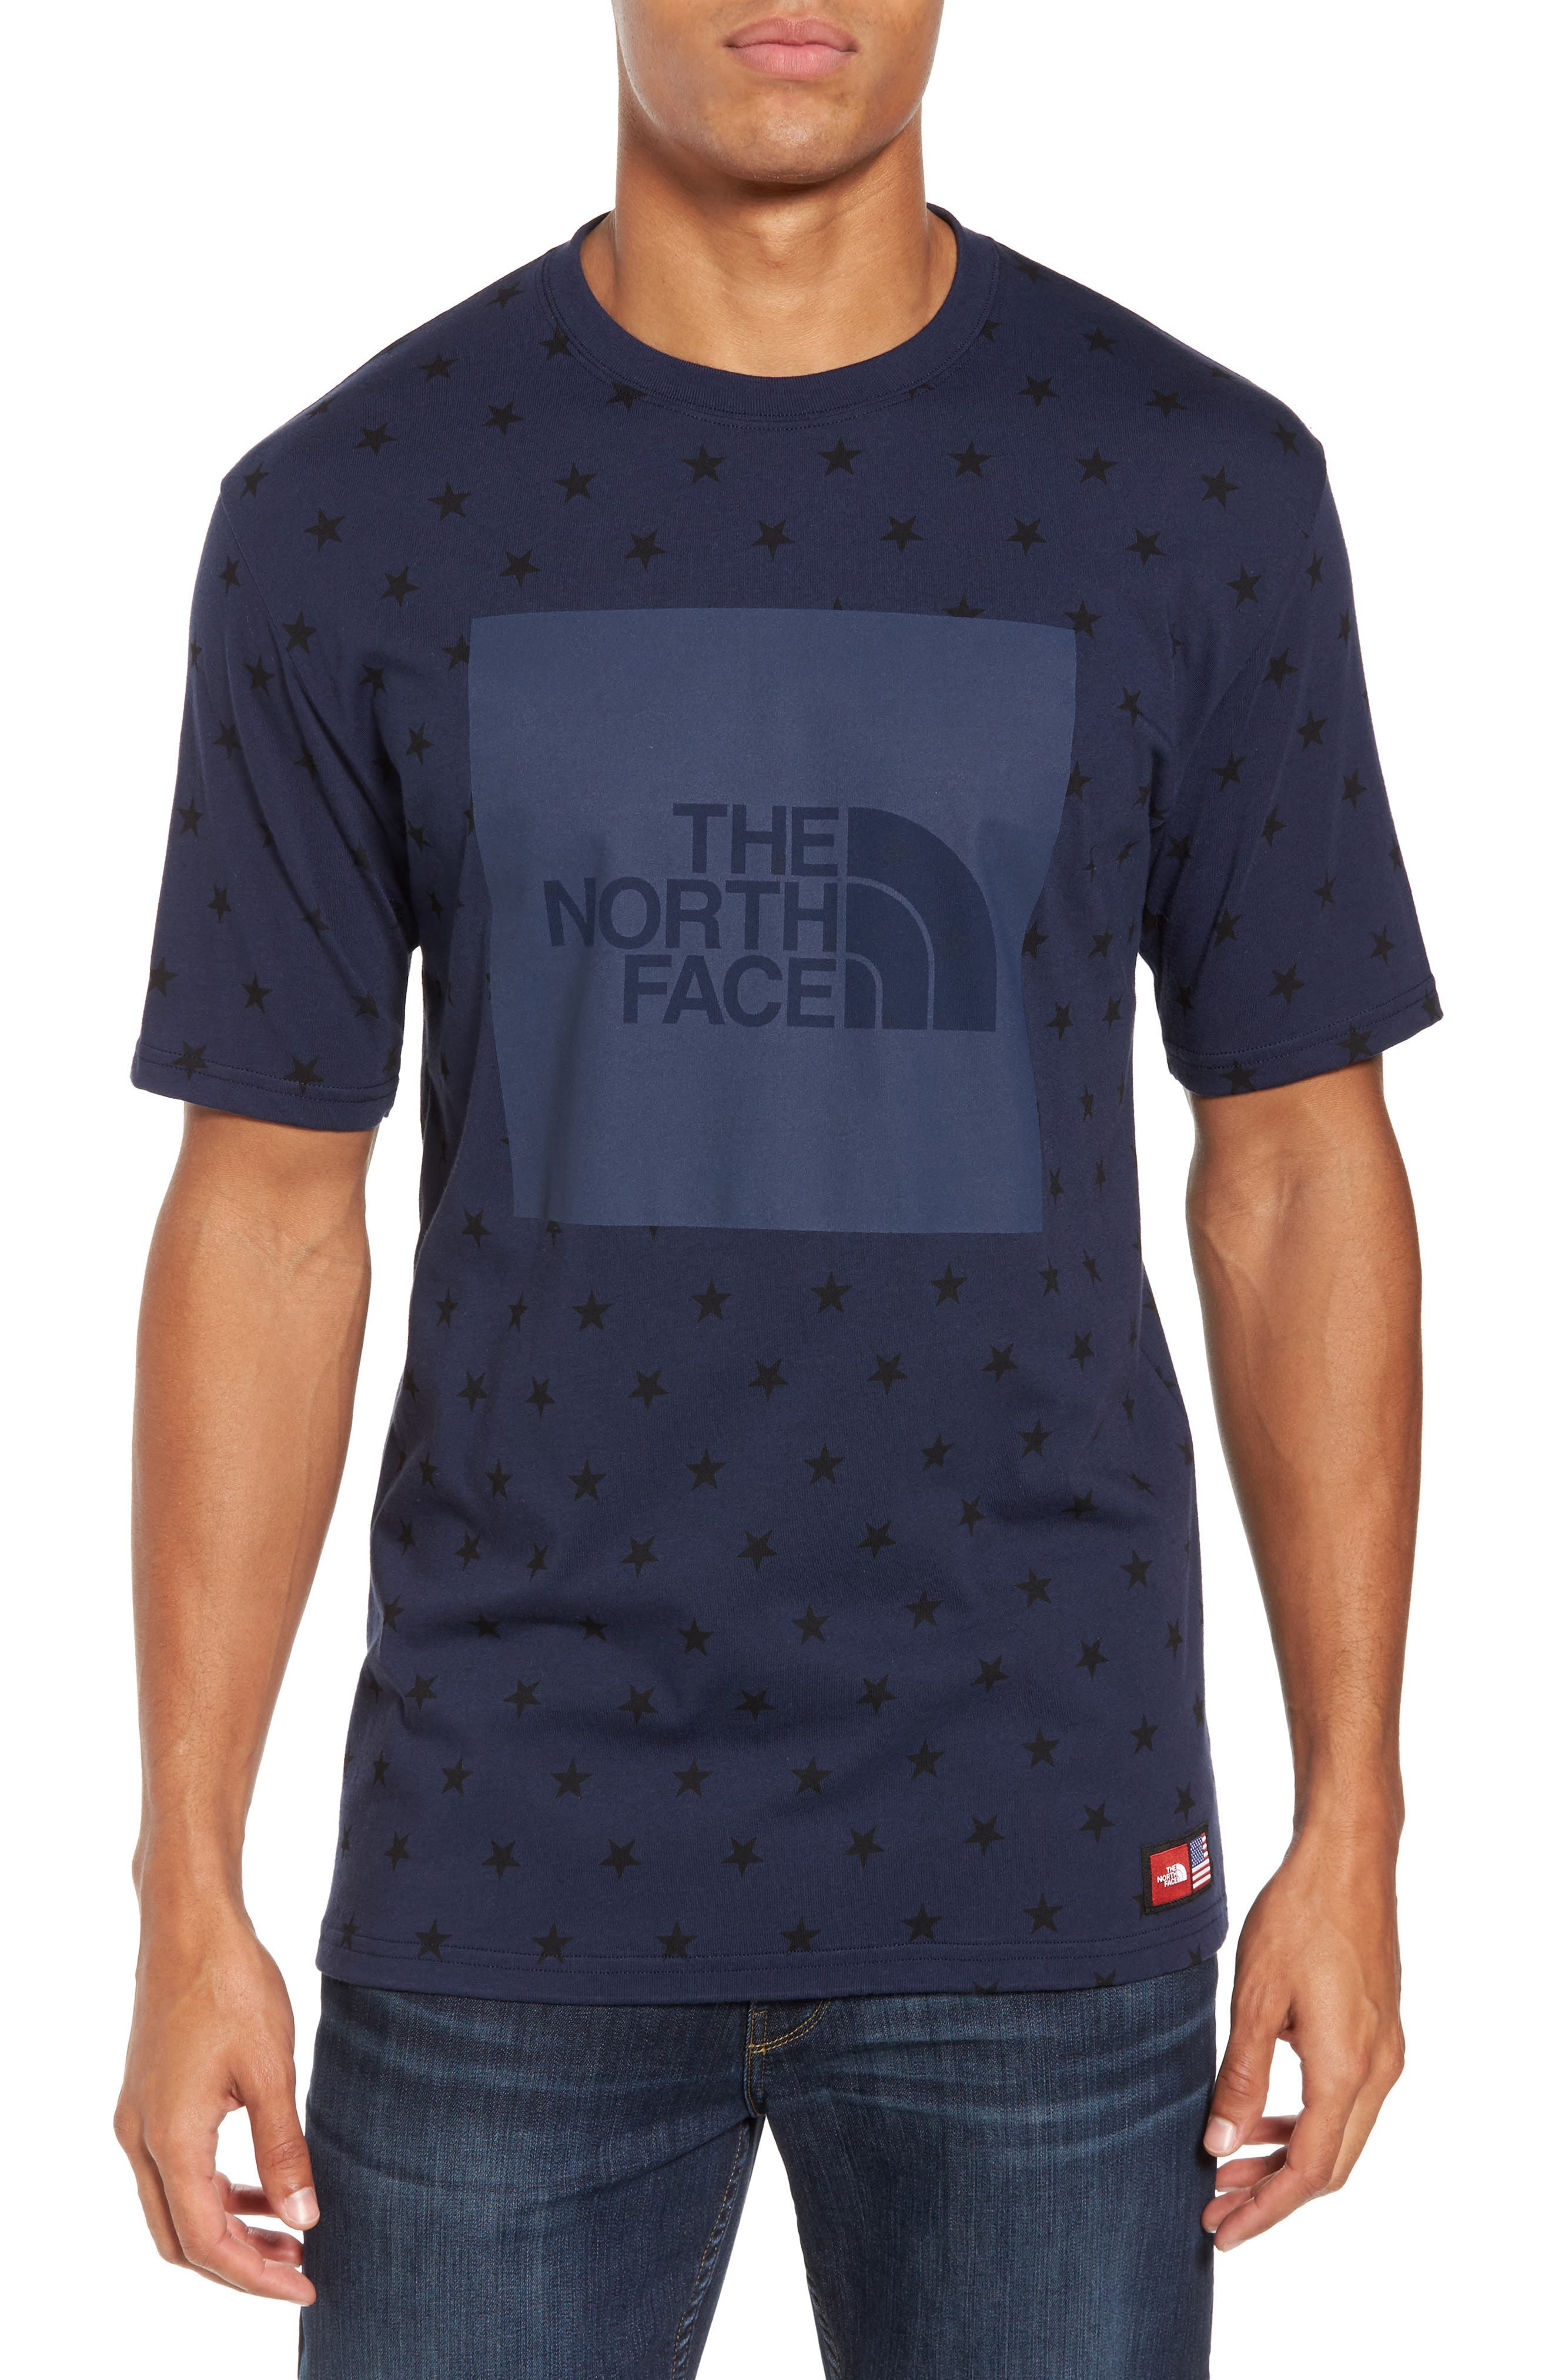 The North Face International Collection Star Print T-Shirt